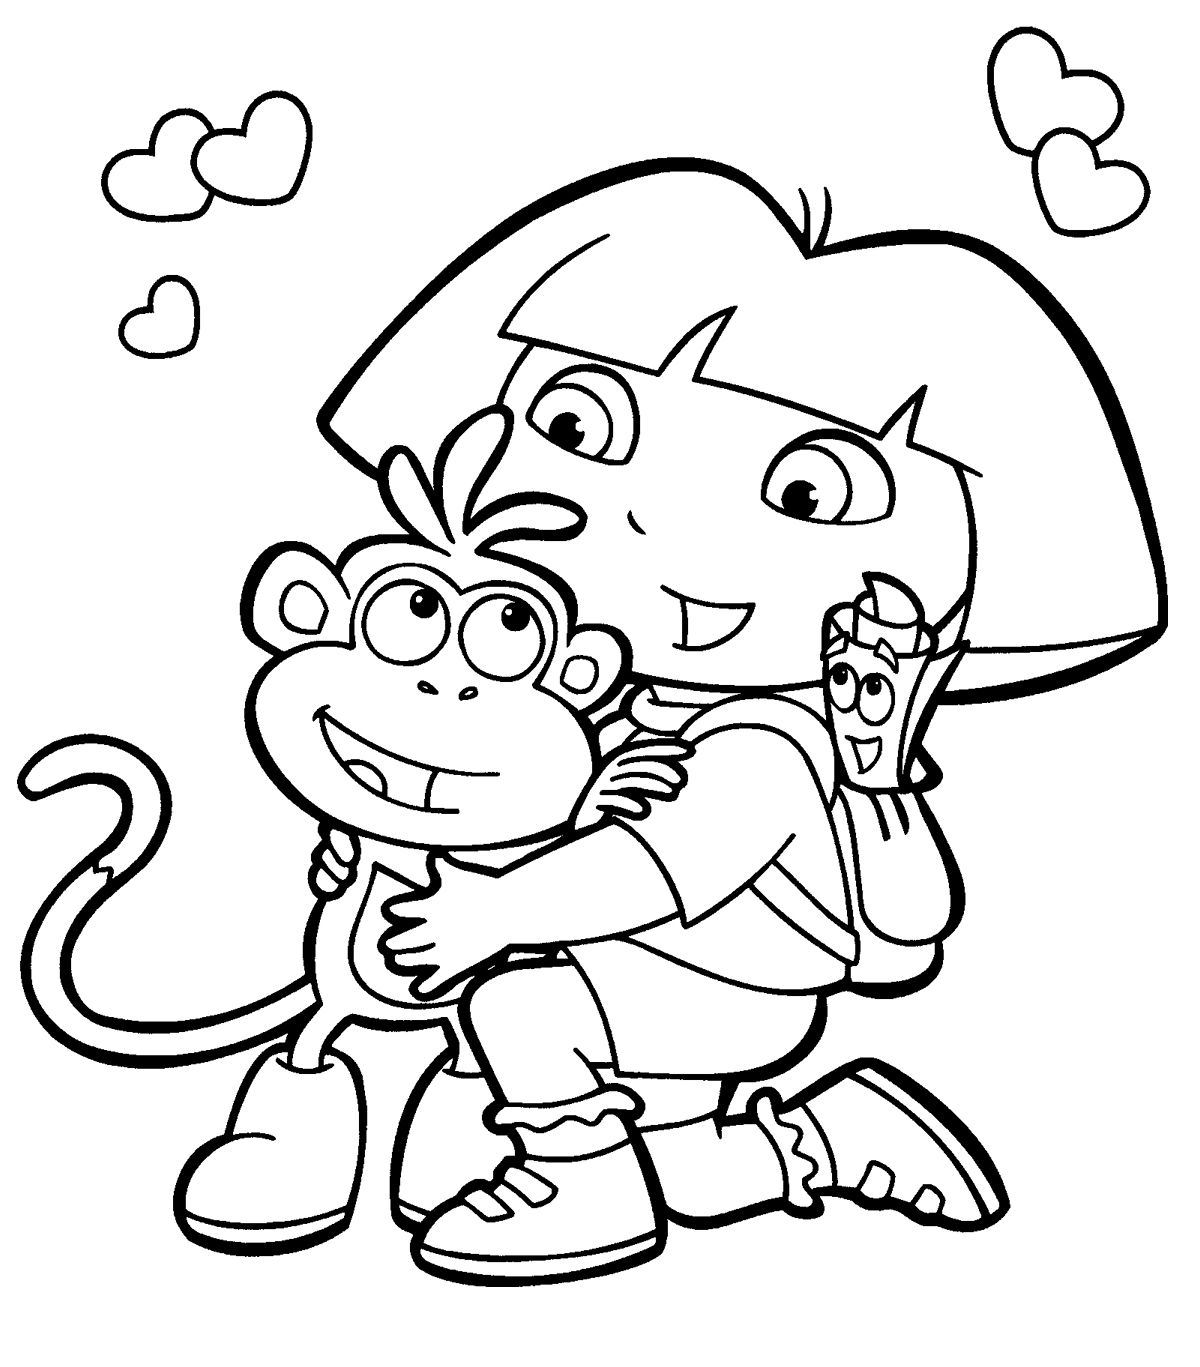 dora coloring pages to print print download dora coloring pages to learn new things to dora pages print coloring